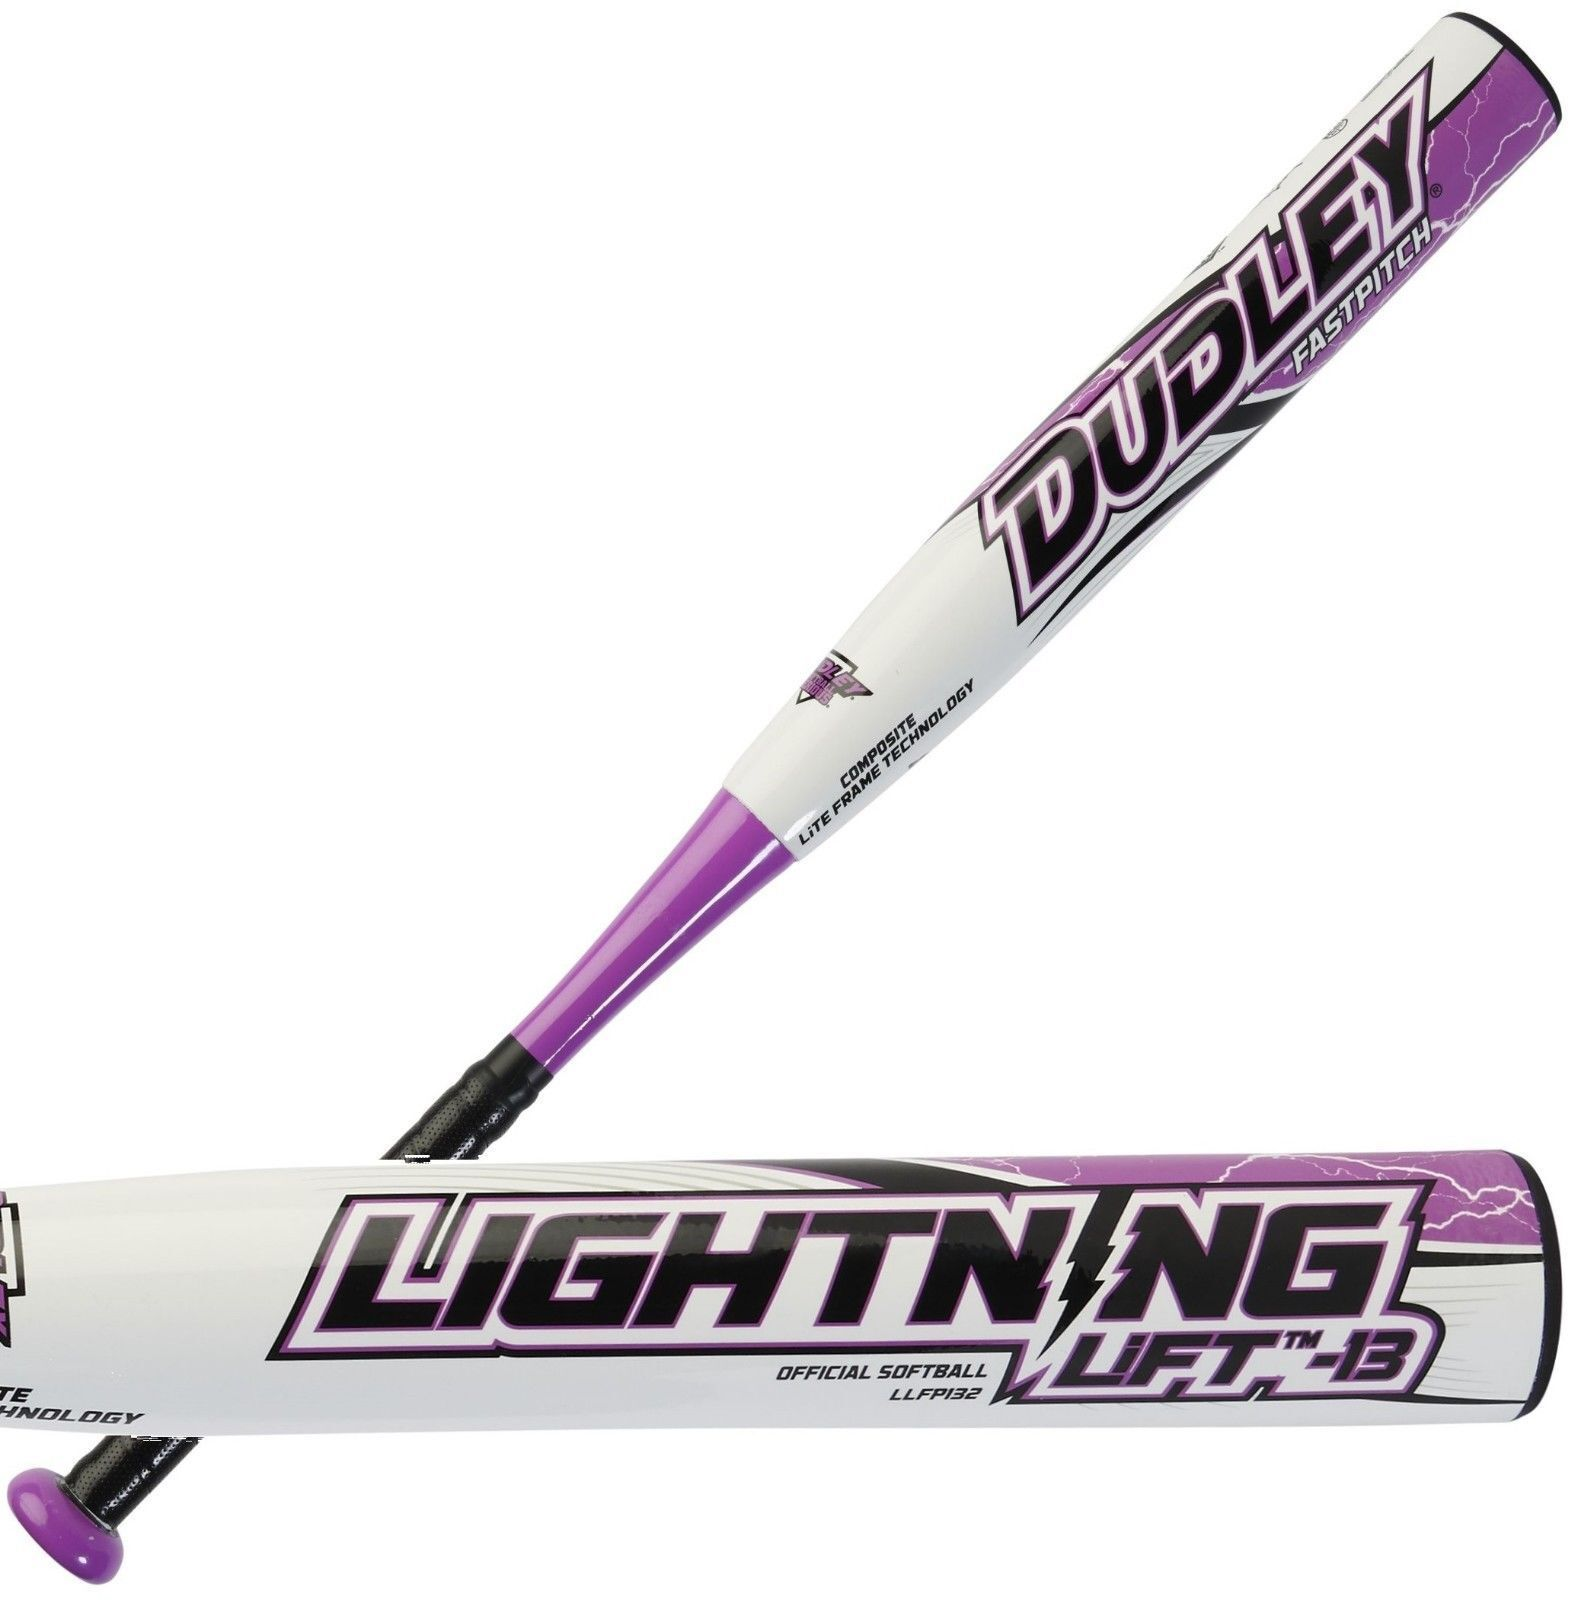 2019 Dudley Lightning Lift -13 Bat 29